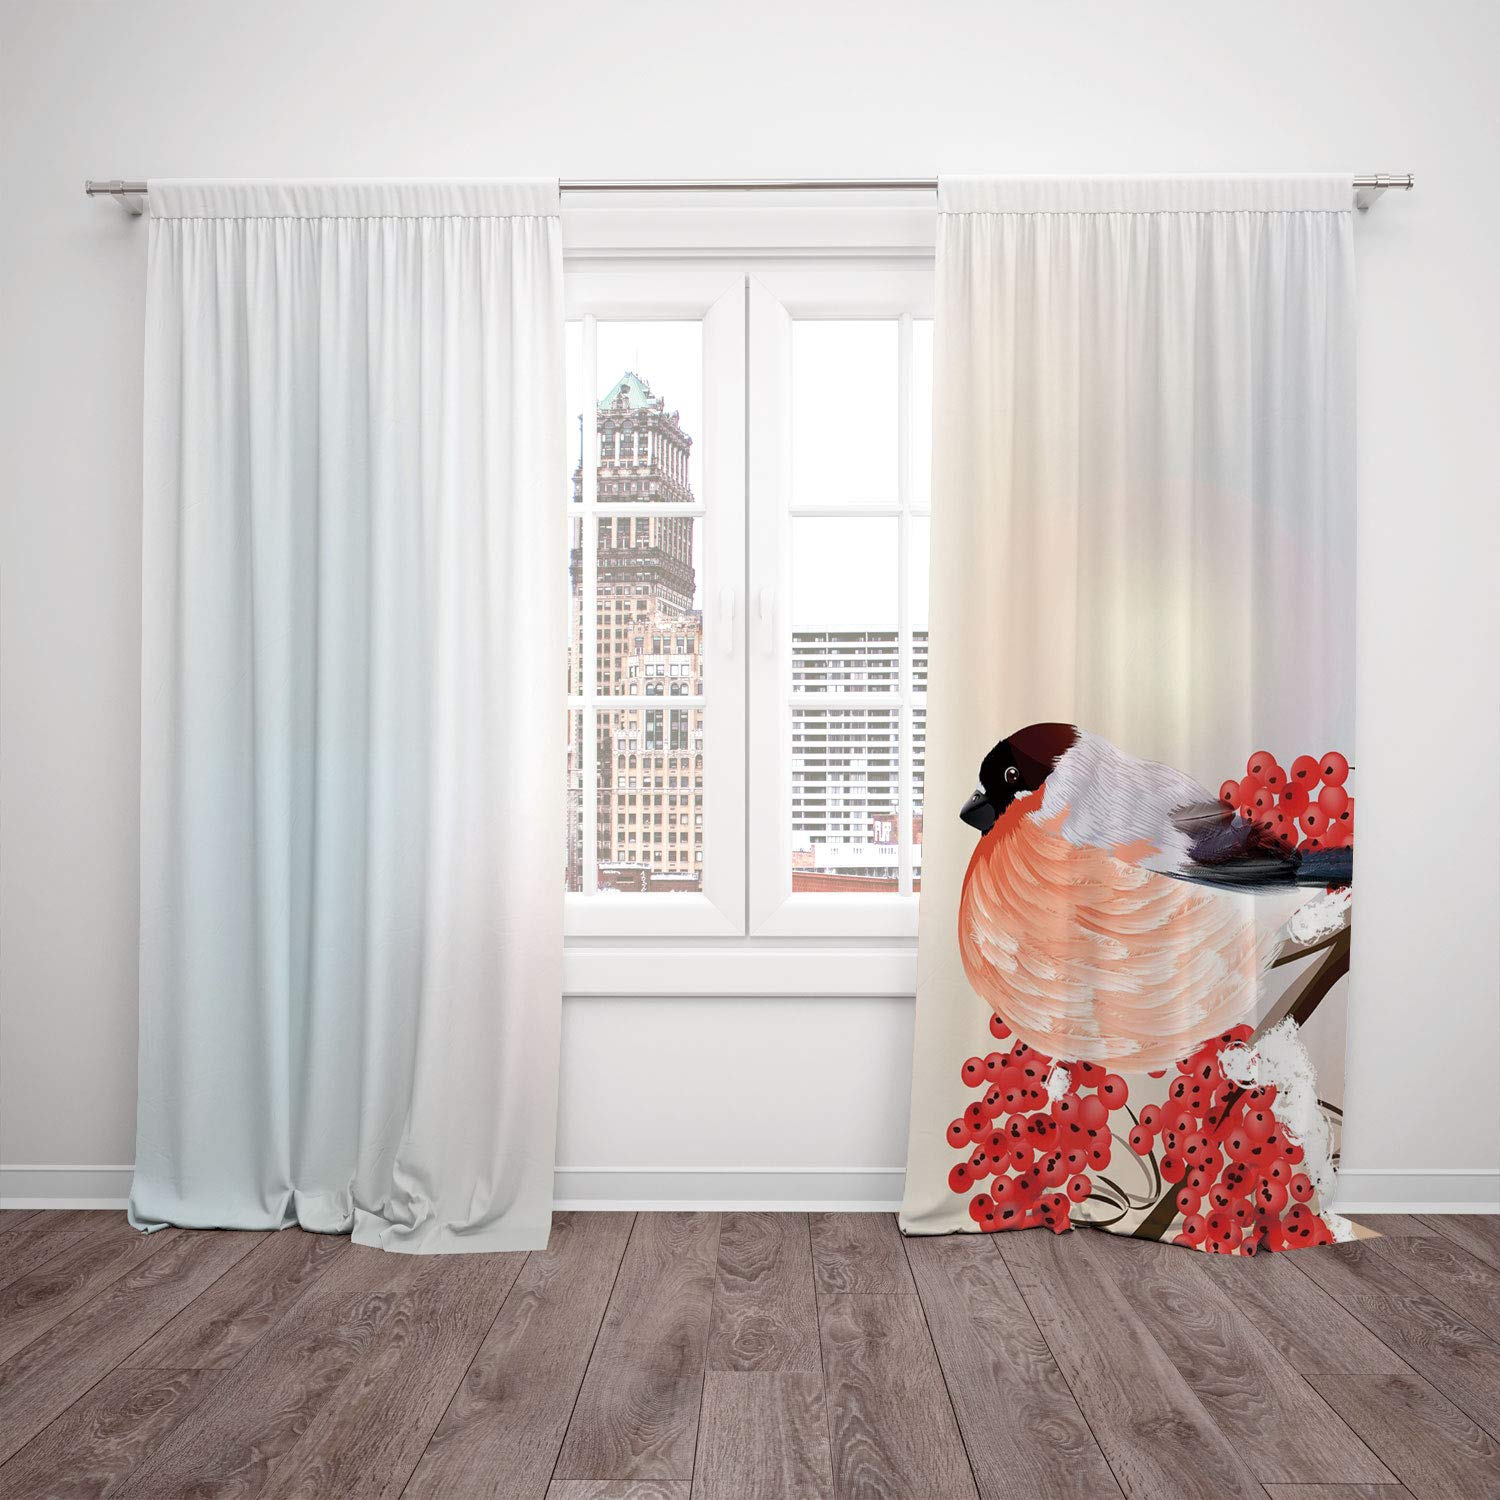 2 Panel Set Satin Window Drapes Kitchen Curtains,Rowan Christmas Themed Corner Composition with Bird Sitting on Wild Berry Branch Salmon Red Brown,for Bedroom Living Room Dorm Kitchen Cafe